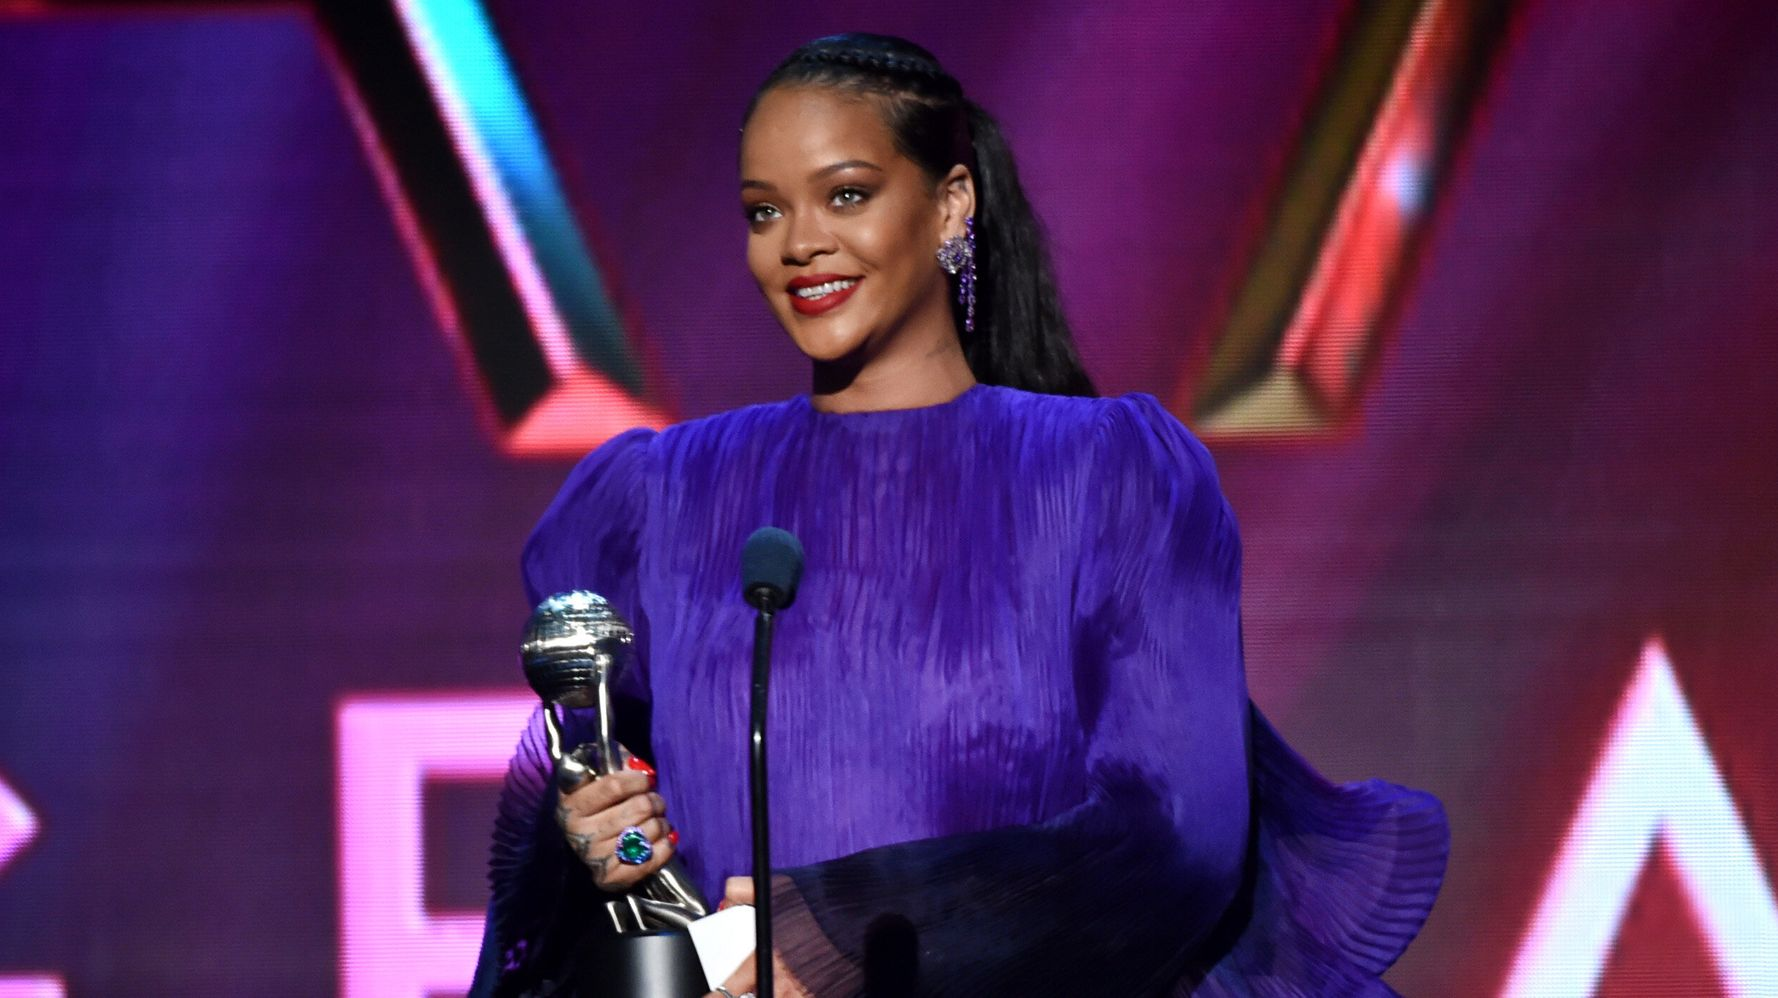 Rihanna Talks Allyship At 2020 NAACP Image Awards: 'Tell Your Friends To Pull Up'